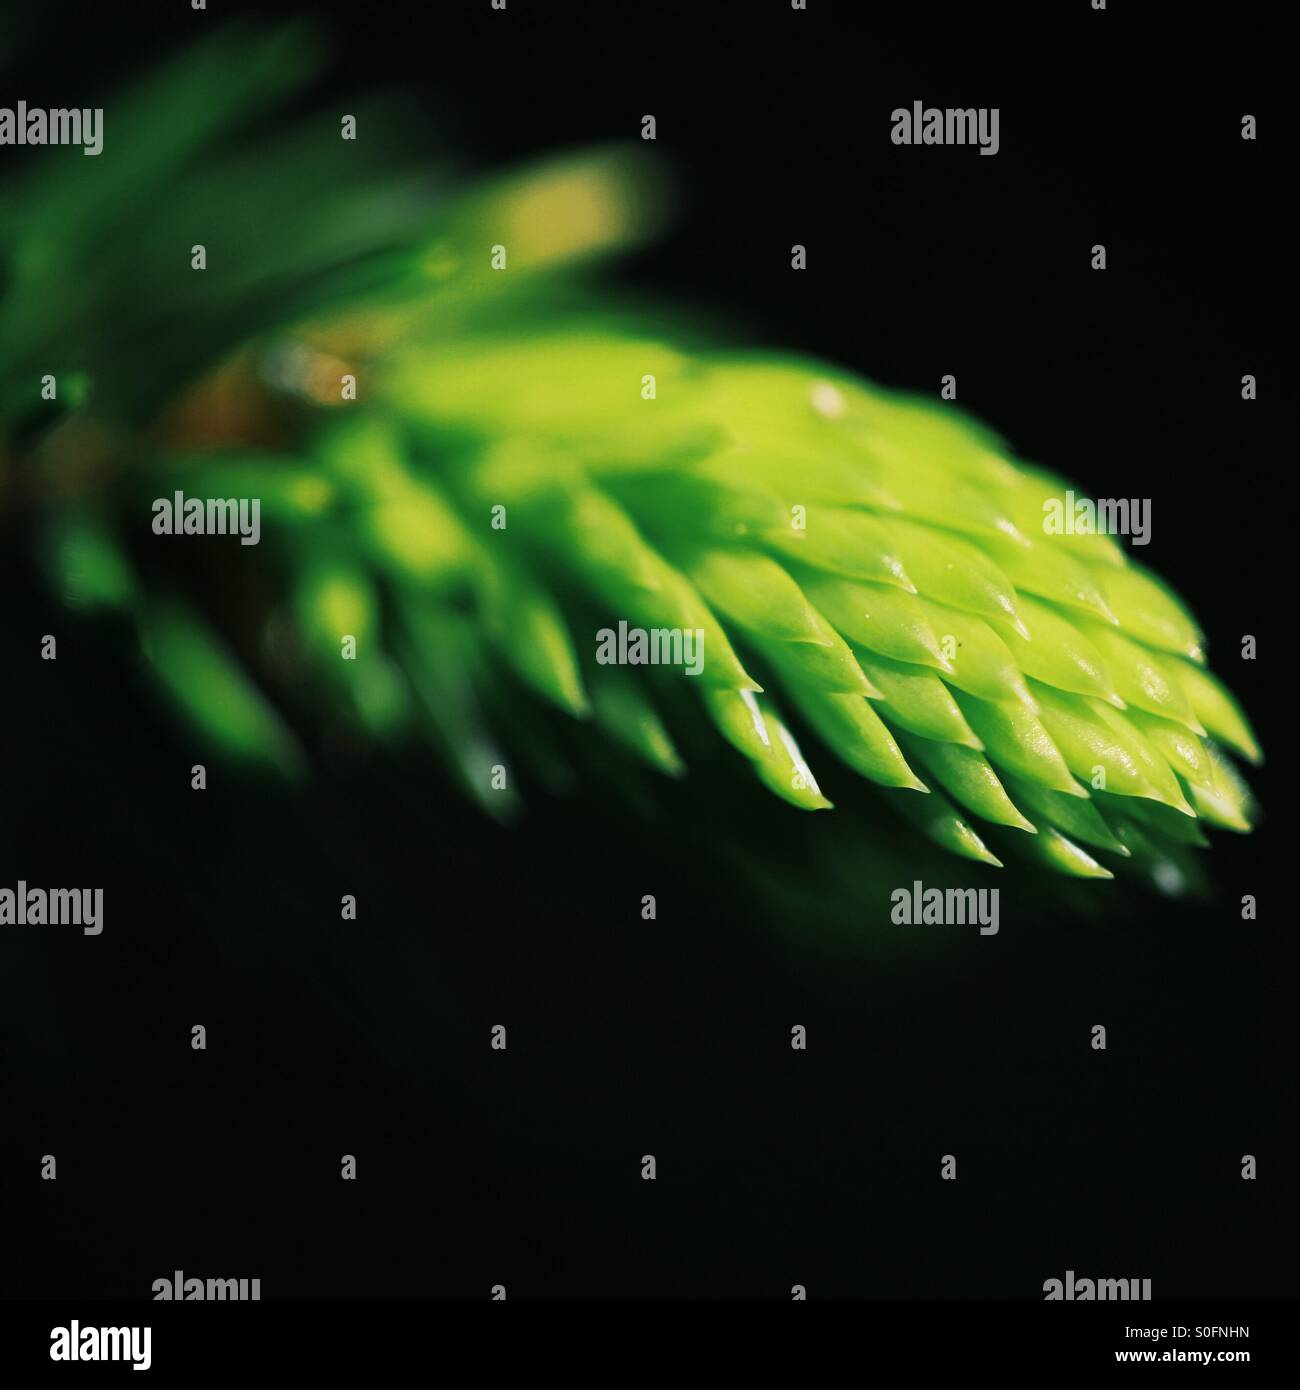 New growth - Stock Image